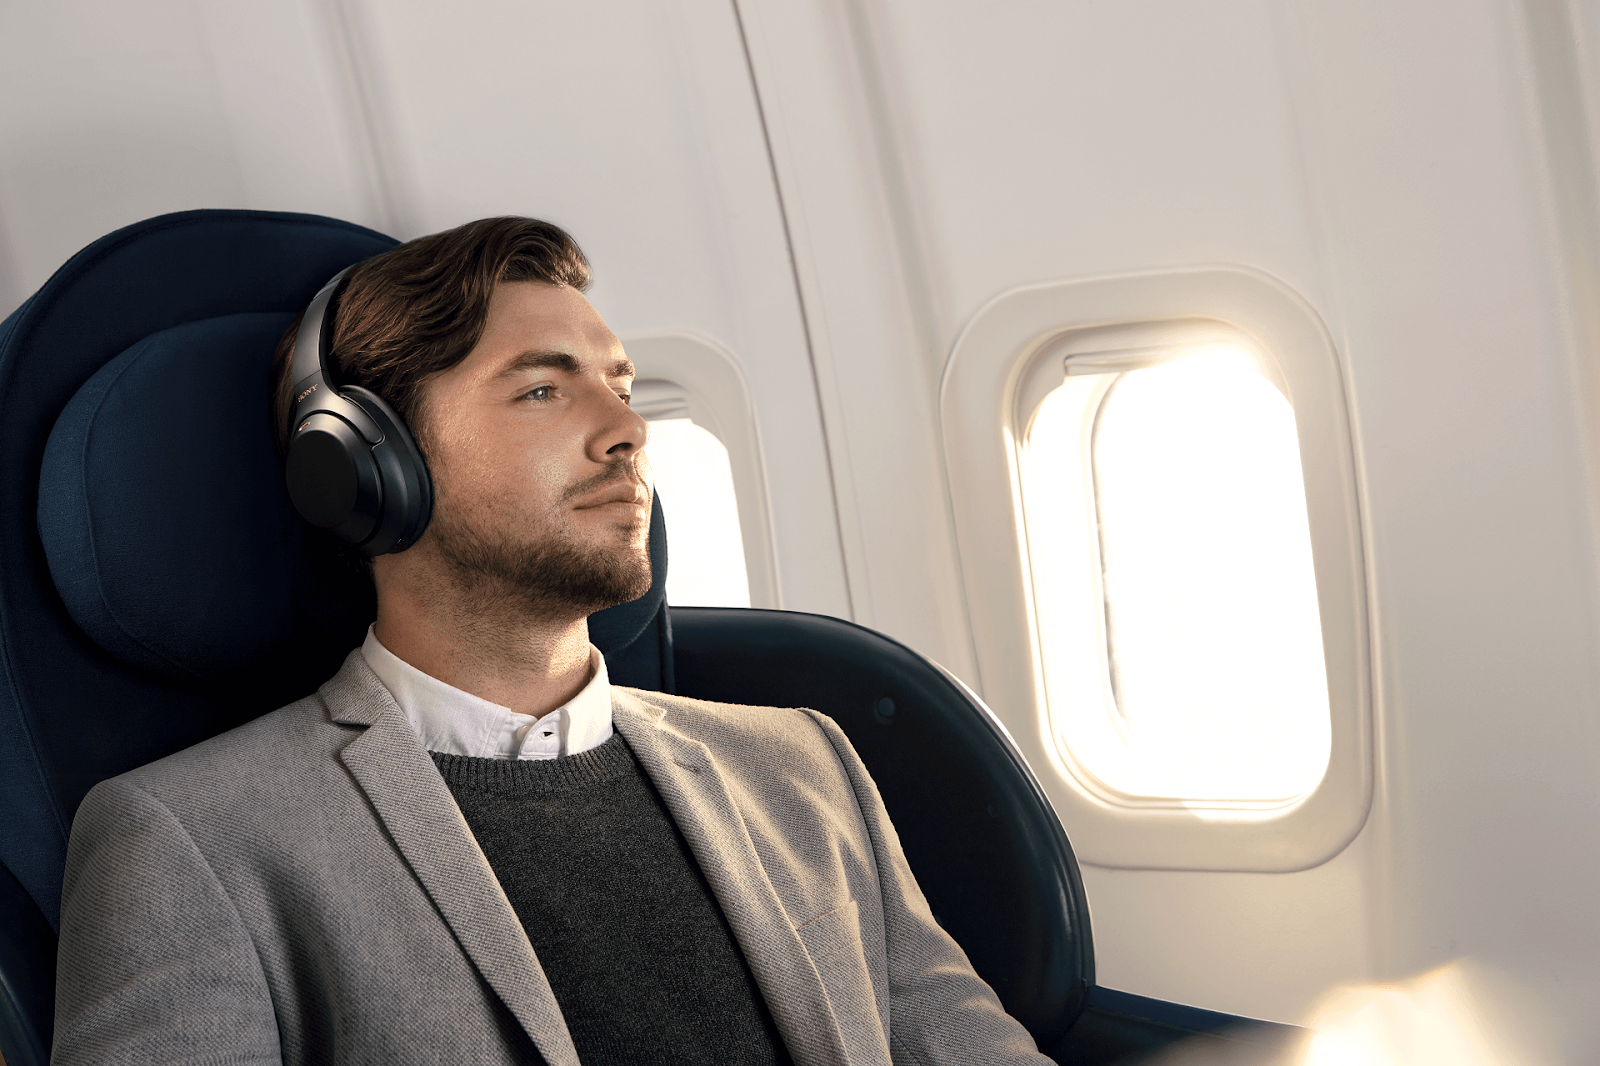 man in suit wearing headphones on a plane